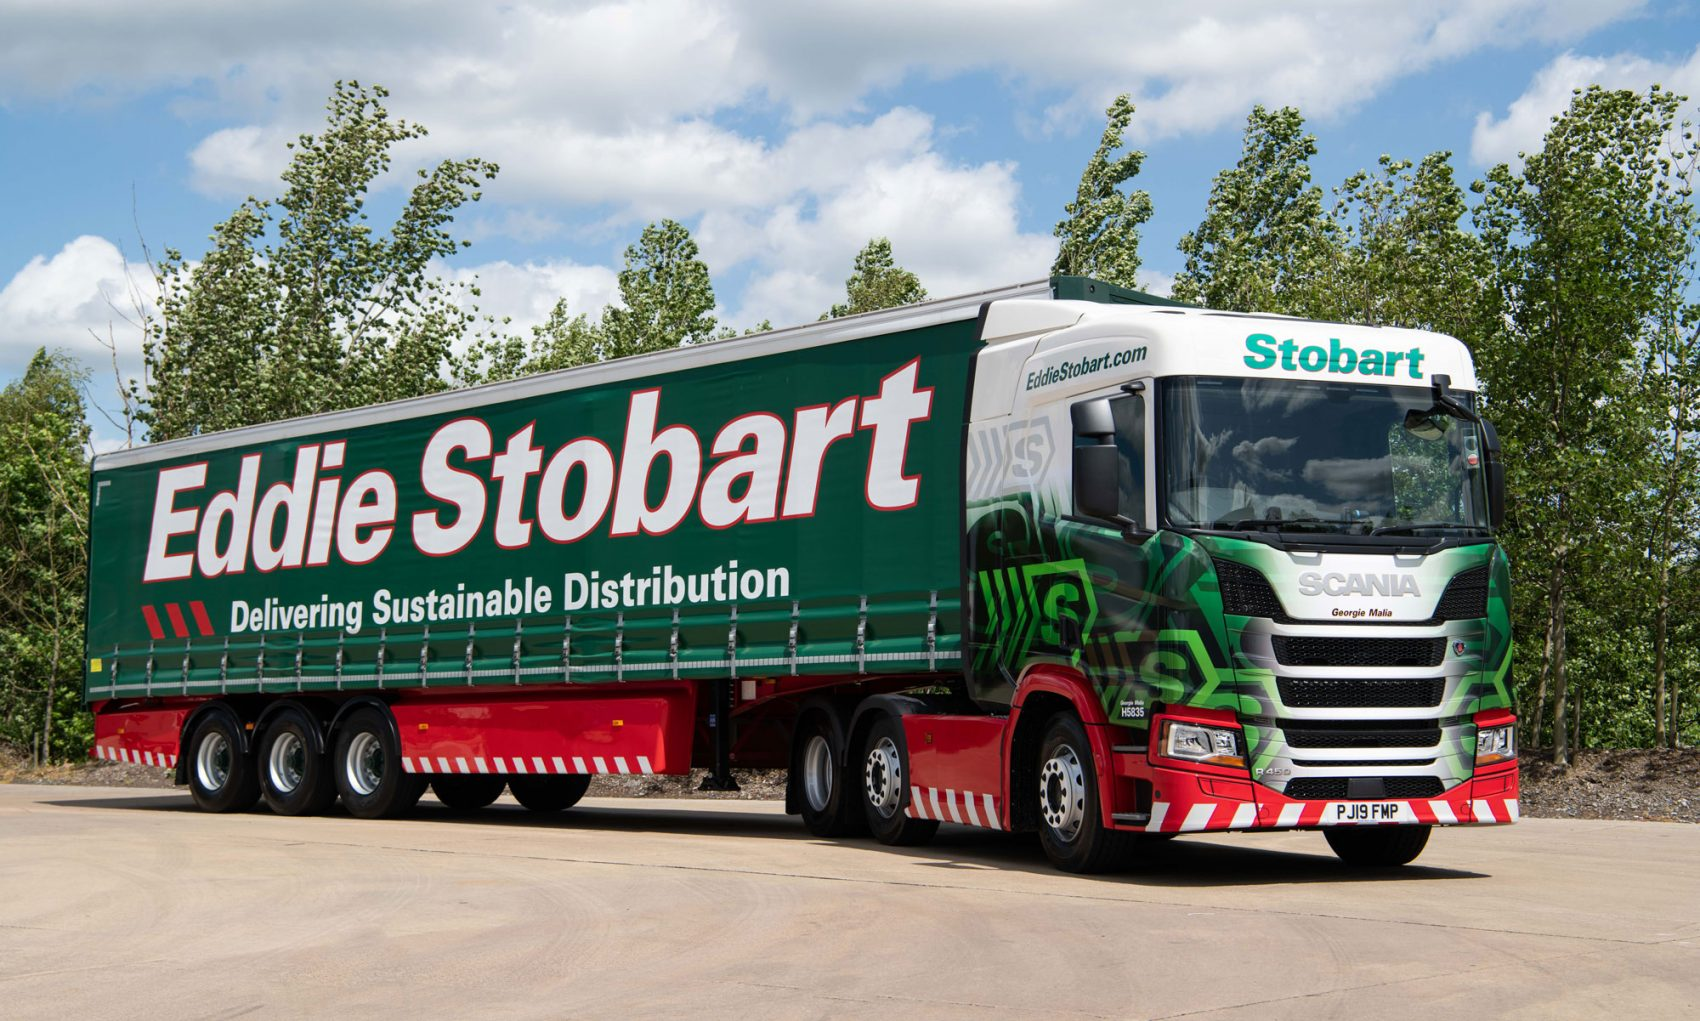 Logistics and Supply Chain Management [Eddie Stobart]